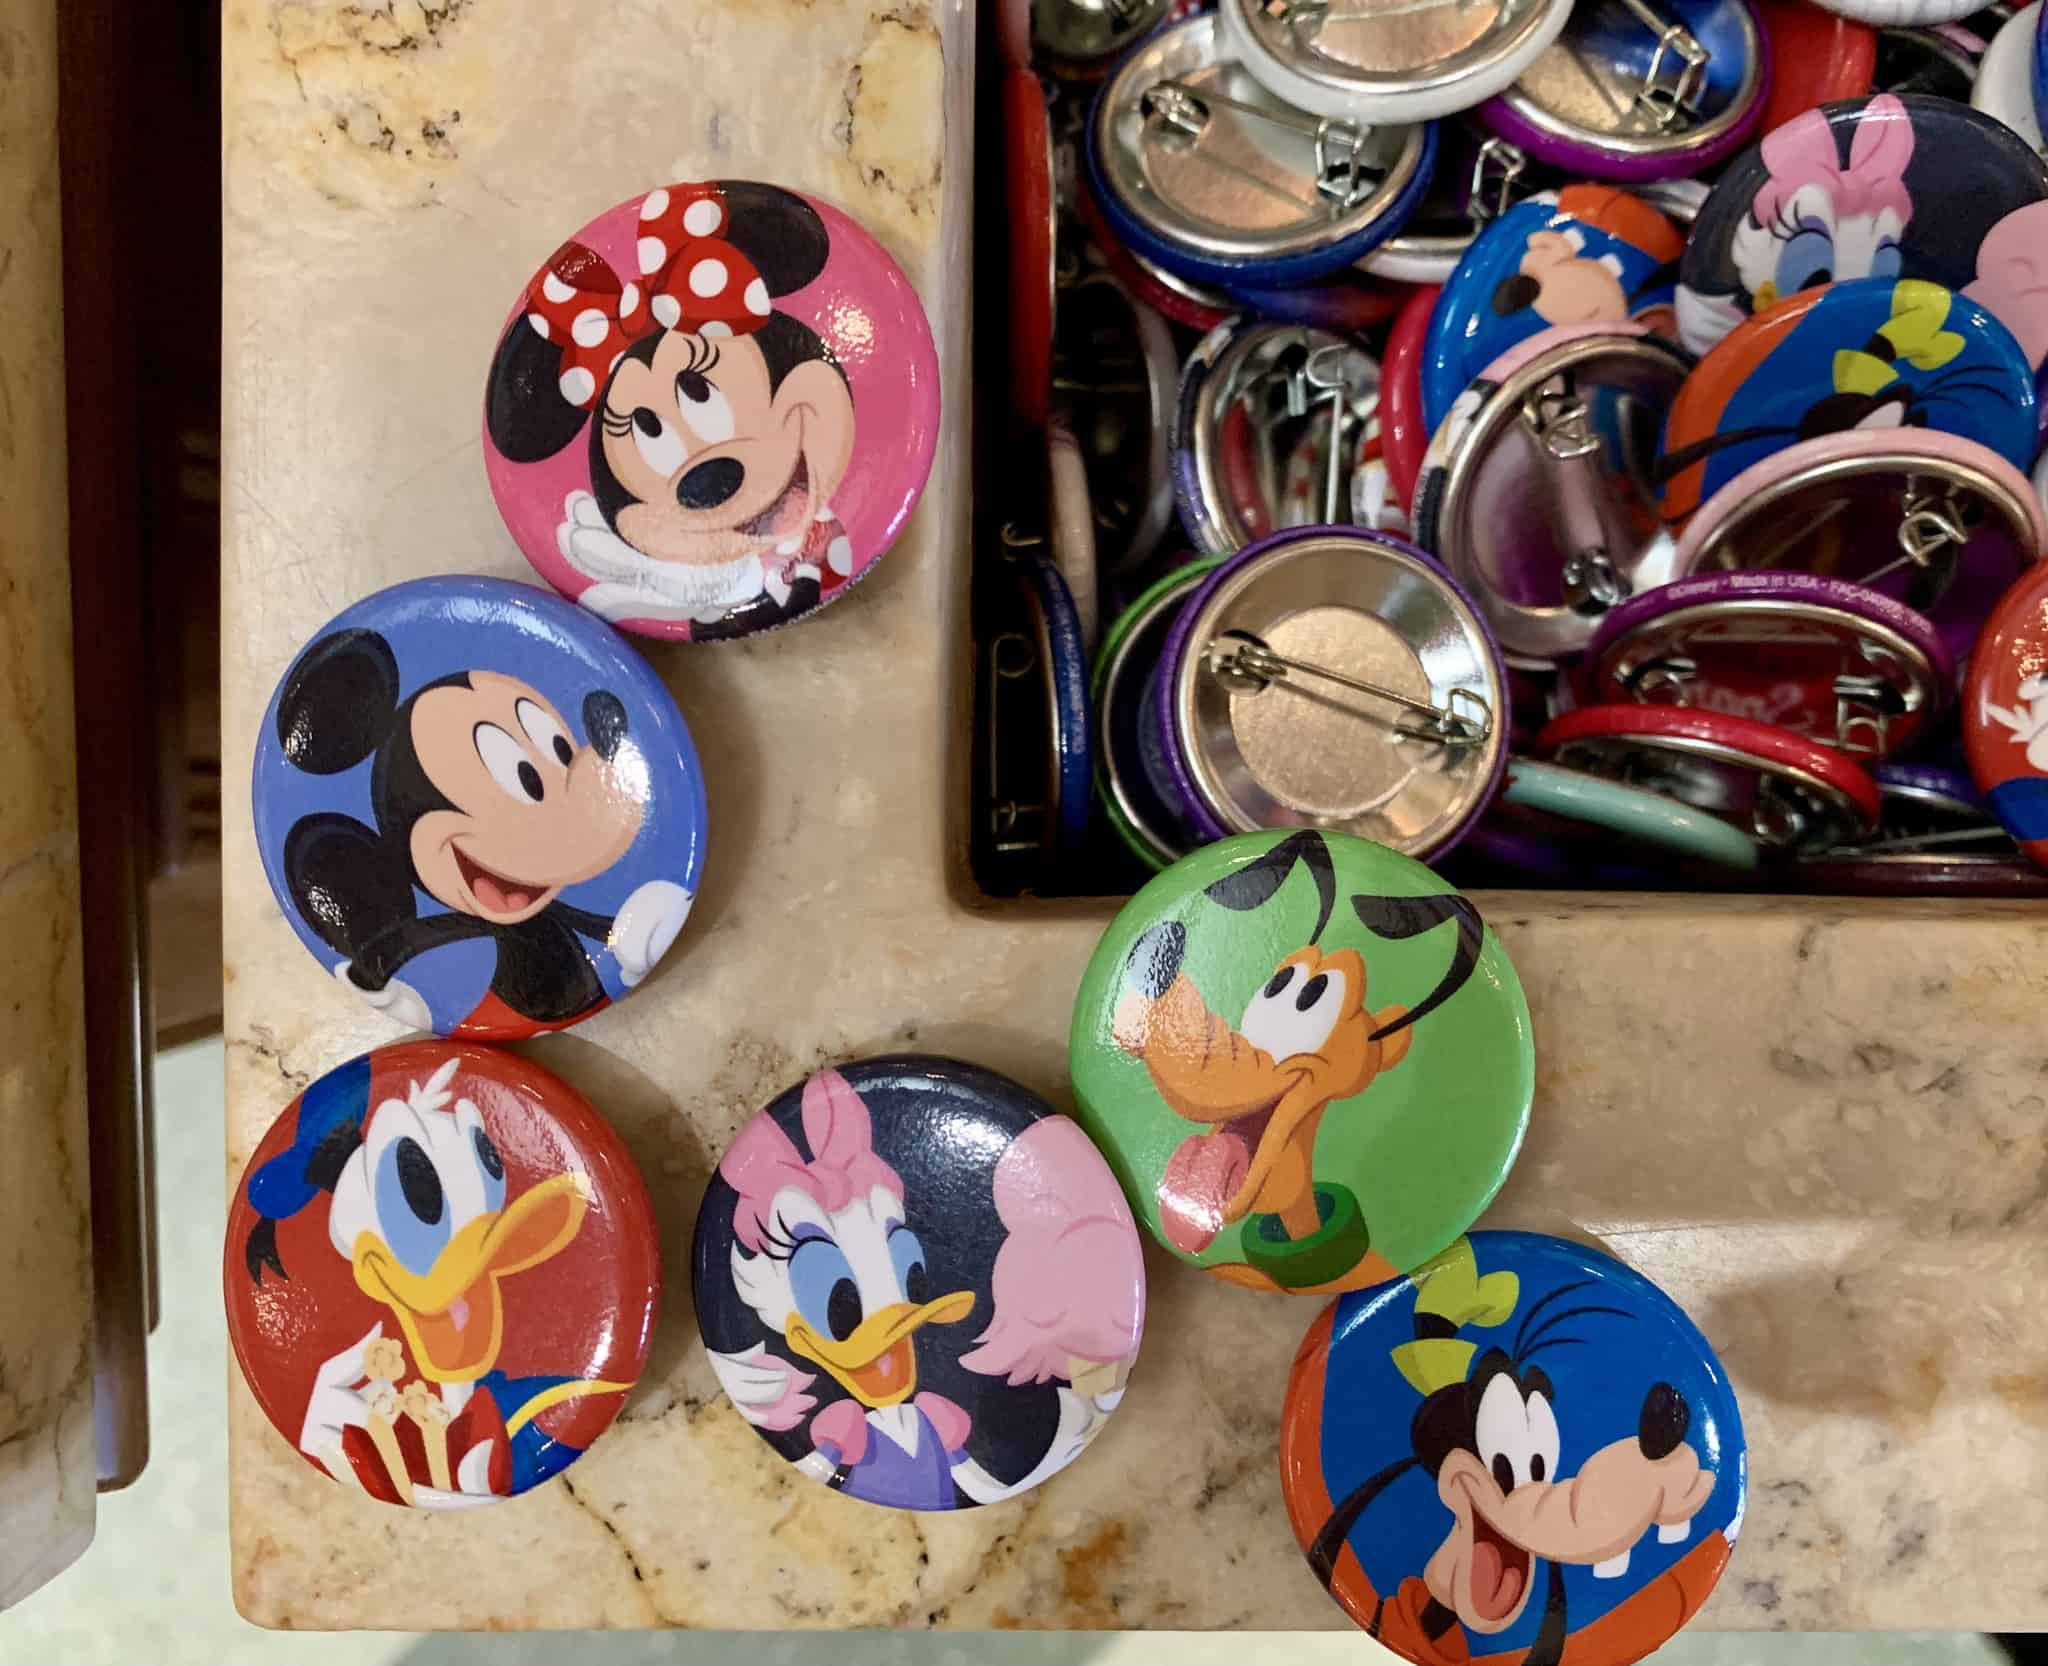 Disneyland Park Photo Report July 20 2019 Park Crowds, Buttons, and More